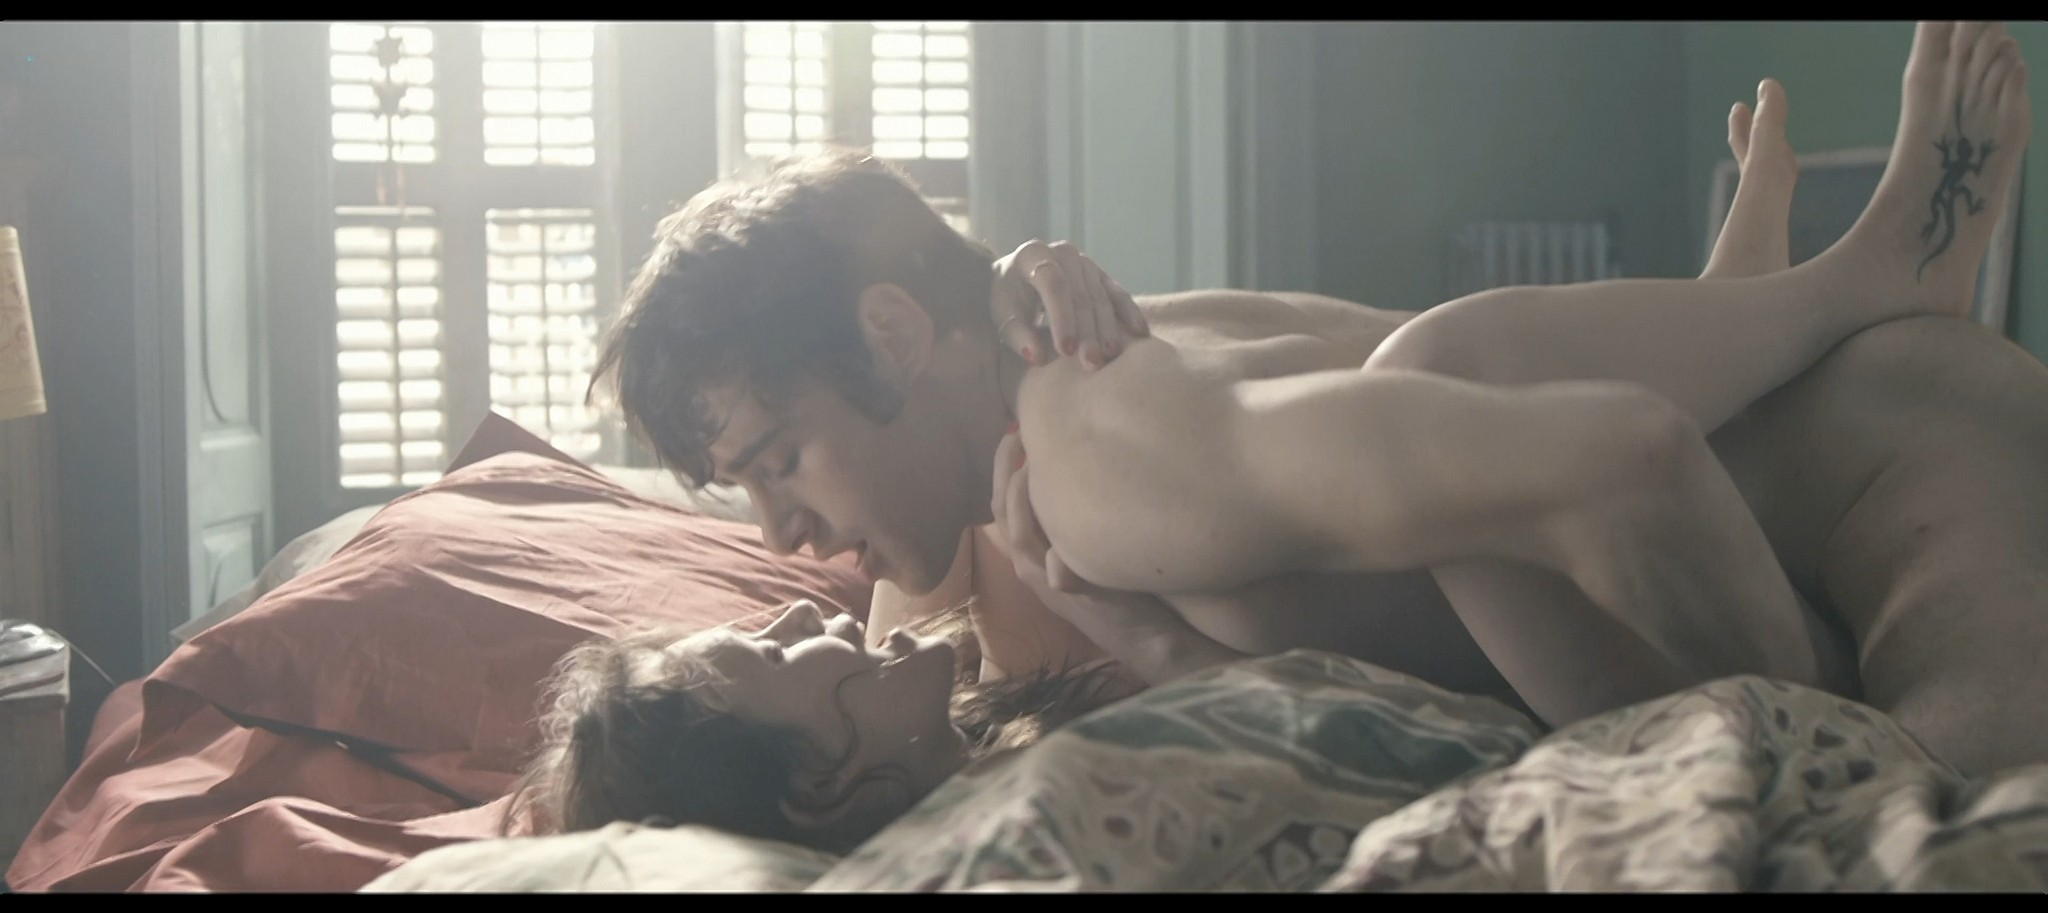 Astrid Berges Frisbey nude and hot sex The Sex of the Angels ES 2012 1080p BluRay REMUX 5